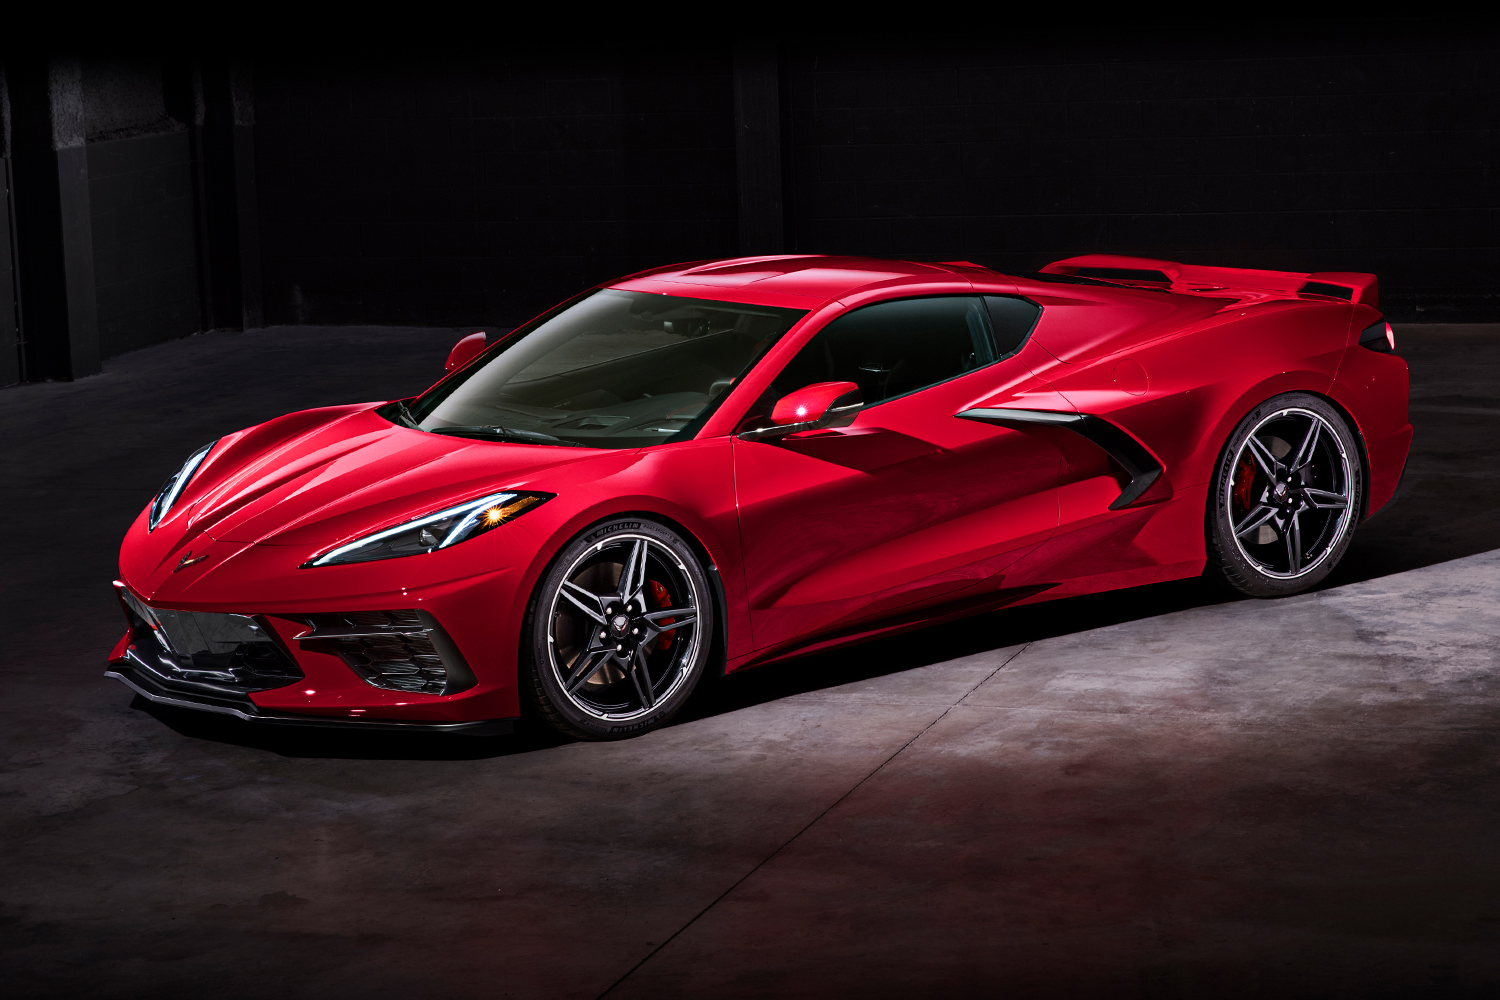 The 2020 Chevrolet Corvette Stingray, the eighth-generation version of the sports car painted red and sitting still against a black background